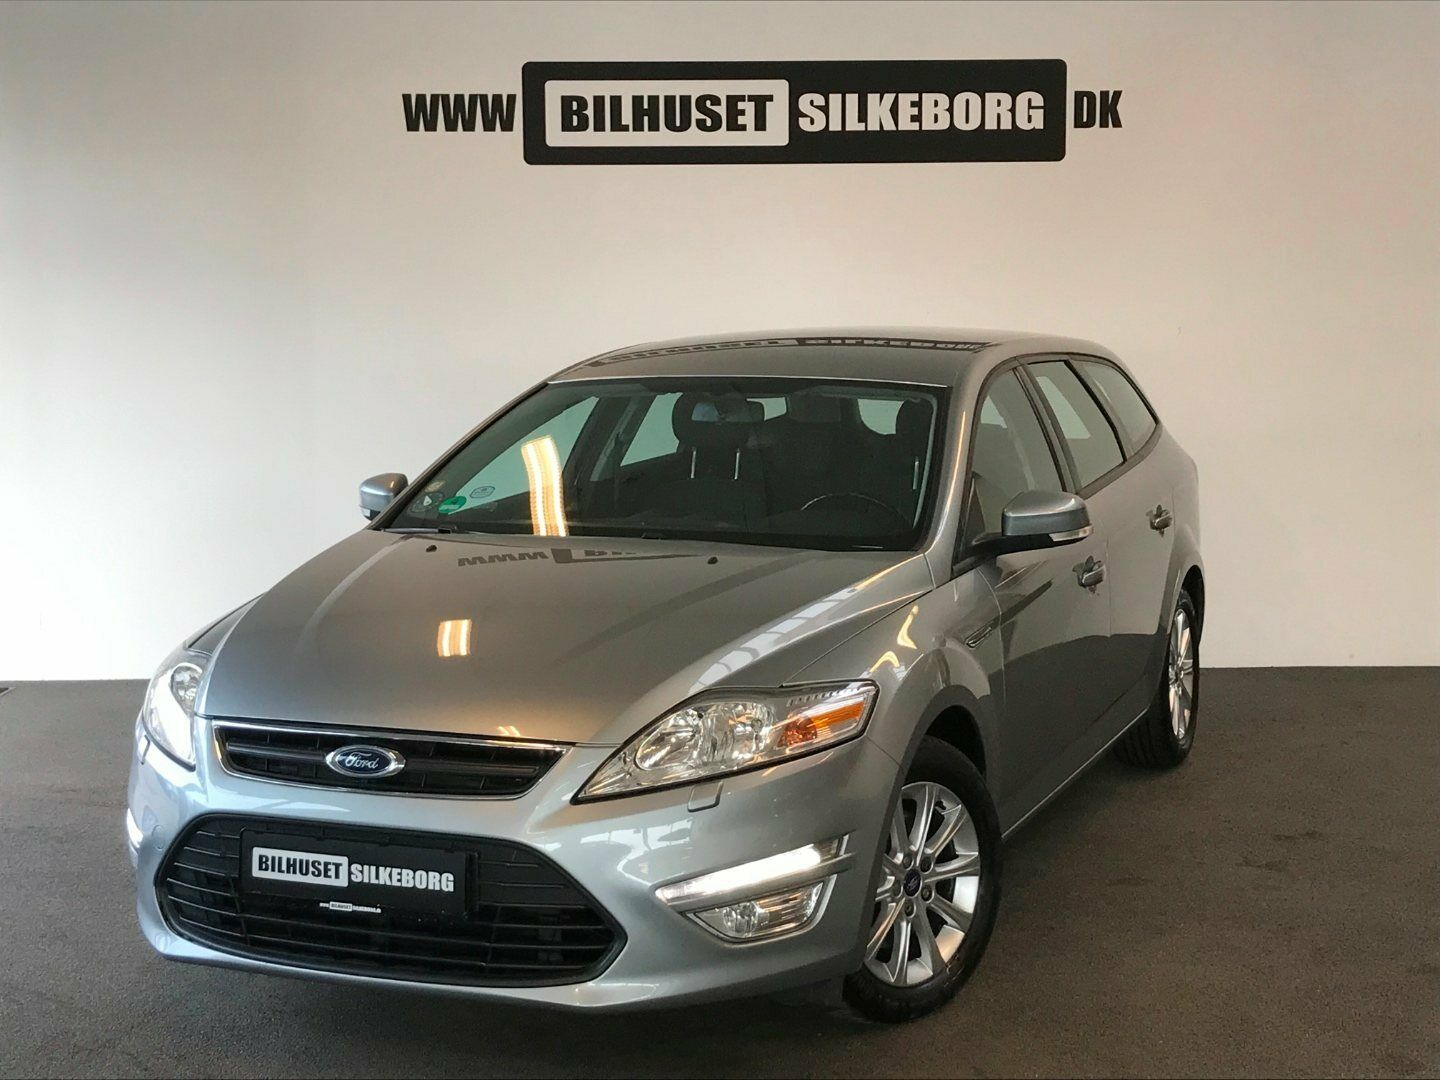 Ford Mondeo 1,6 TDCi 115 Trend stc. ECO 5d - 119.900 kr.